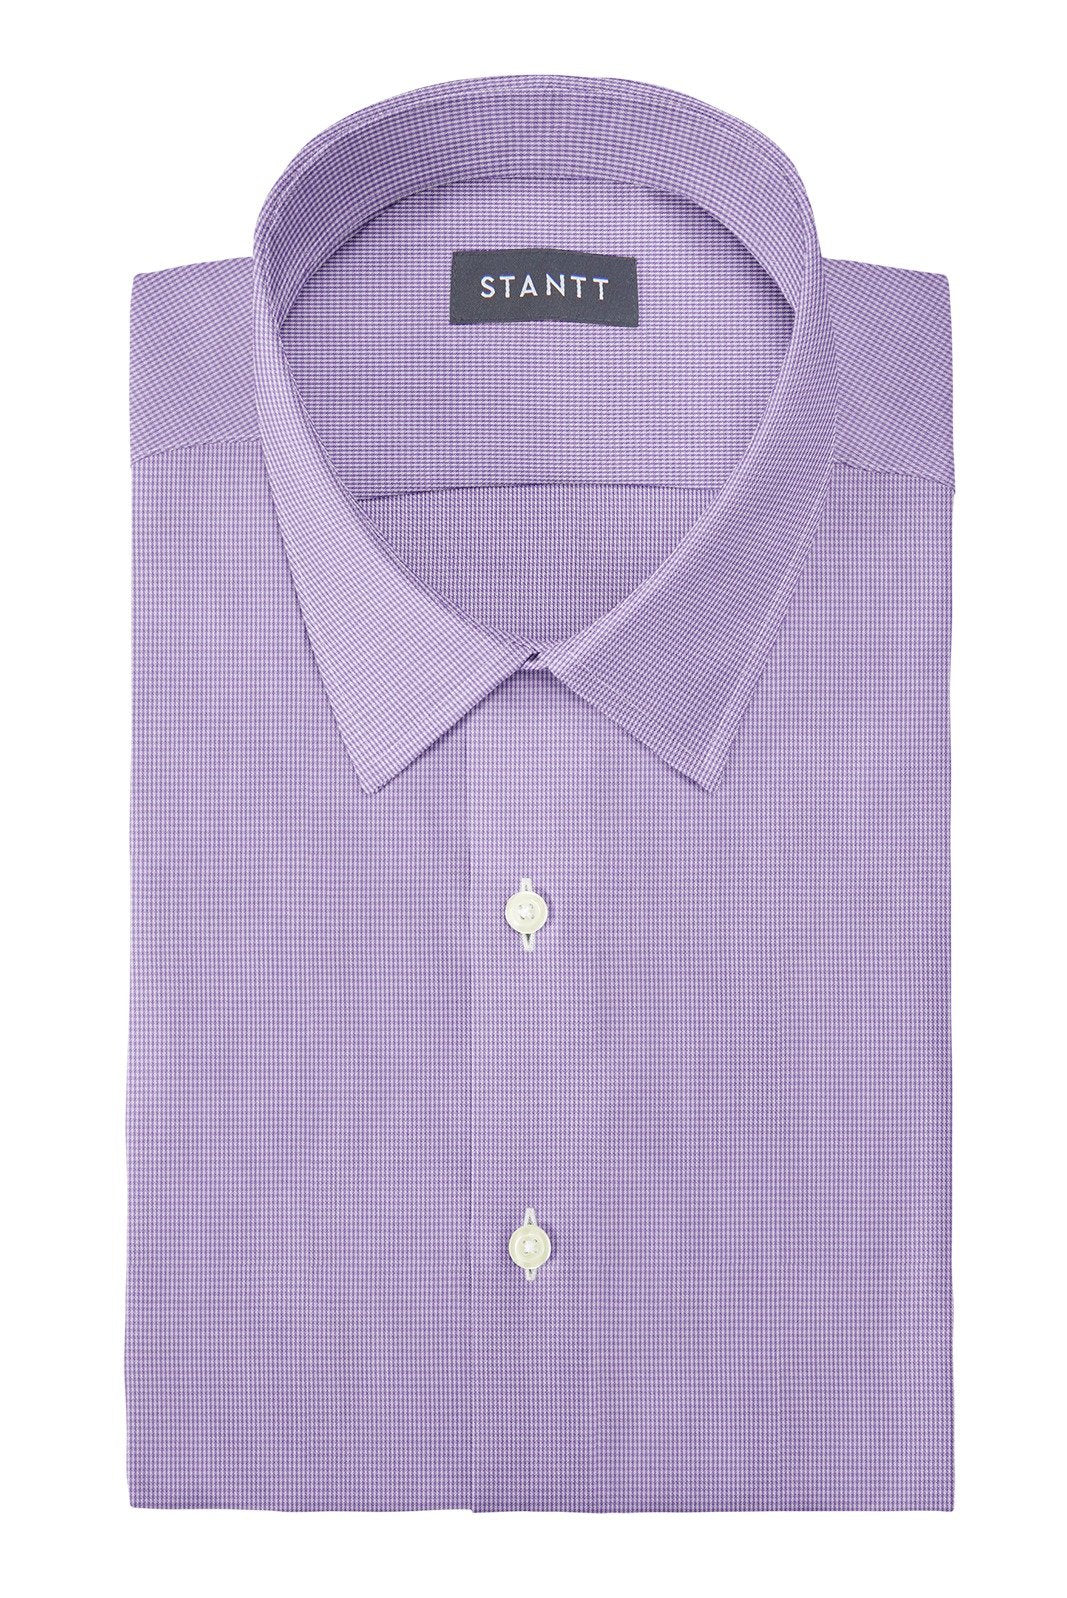 Wrinkle-Resistant Purple Micro Gingham: Semi-Spread Collar, French Cuff